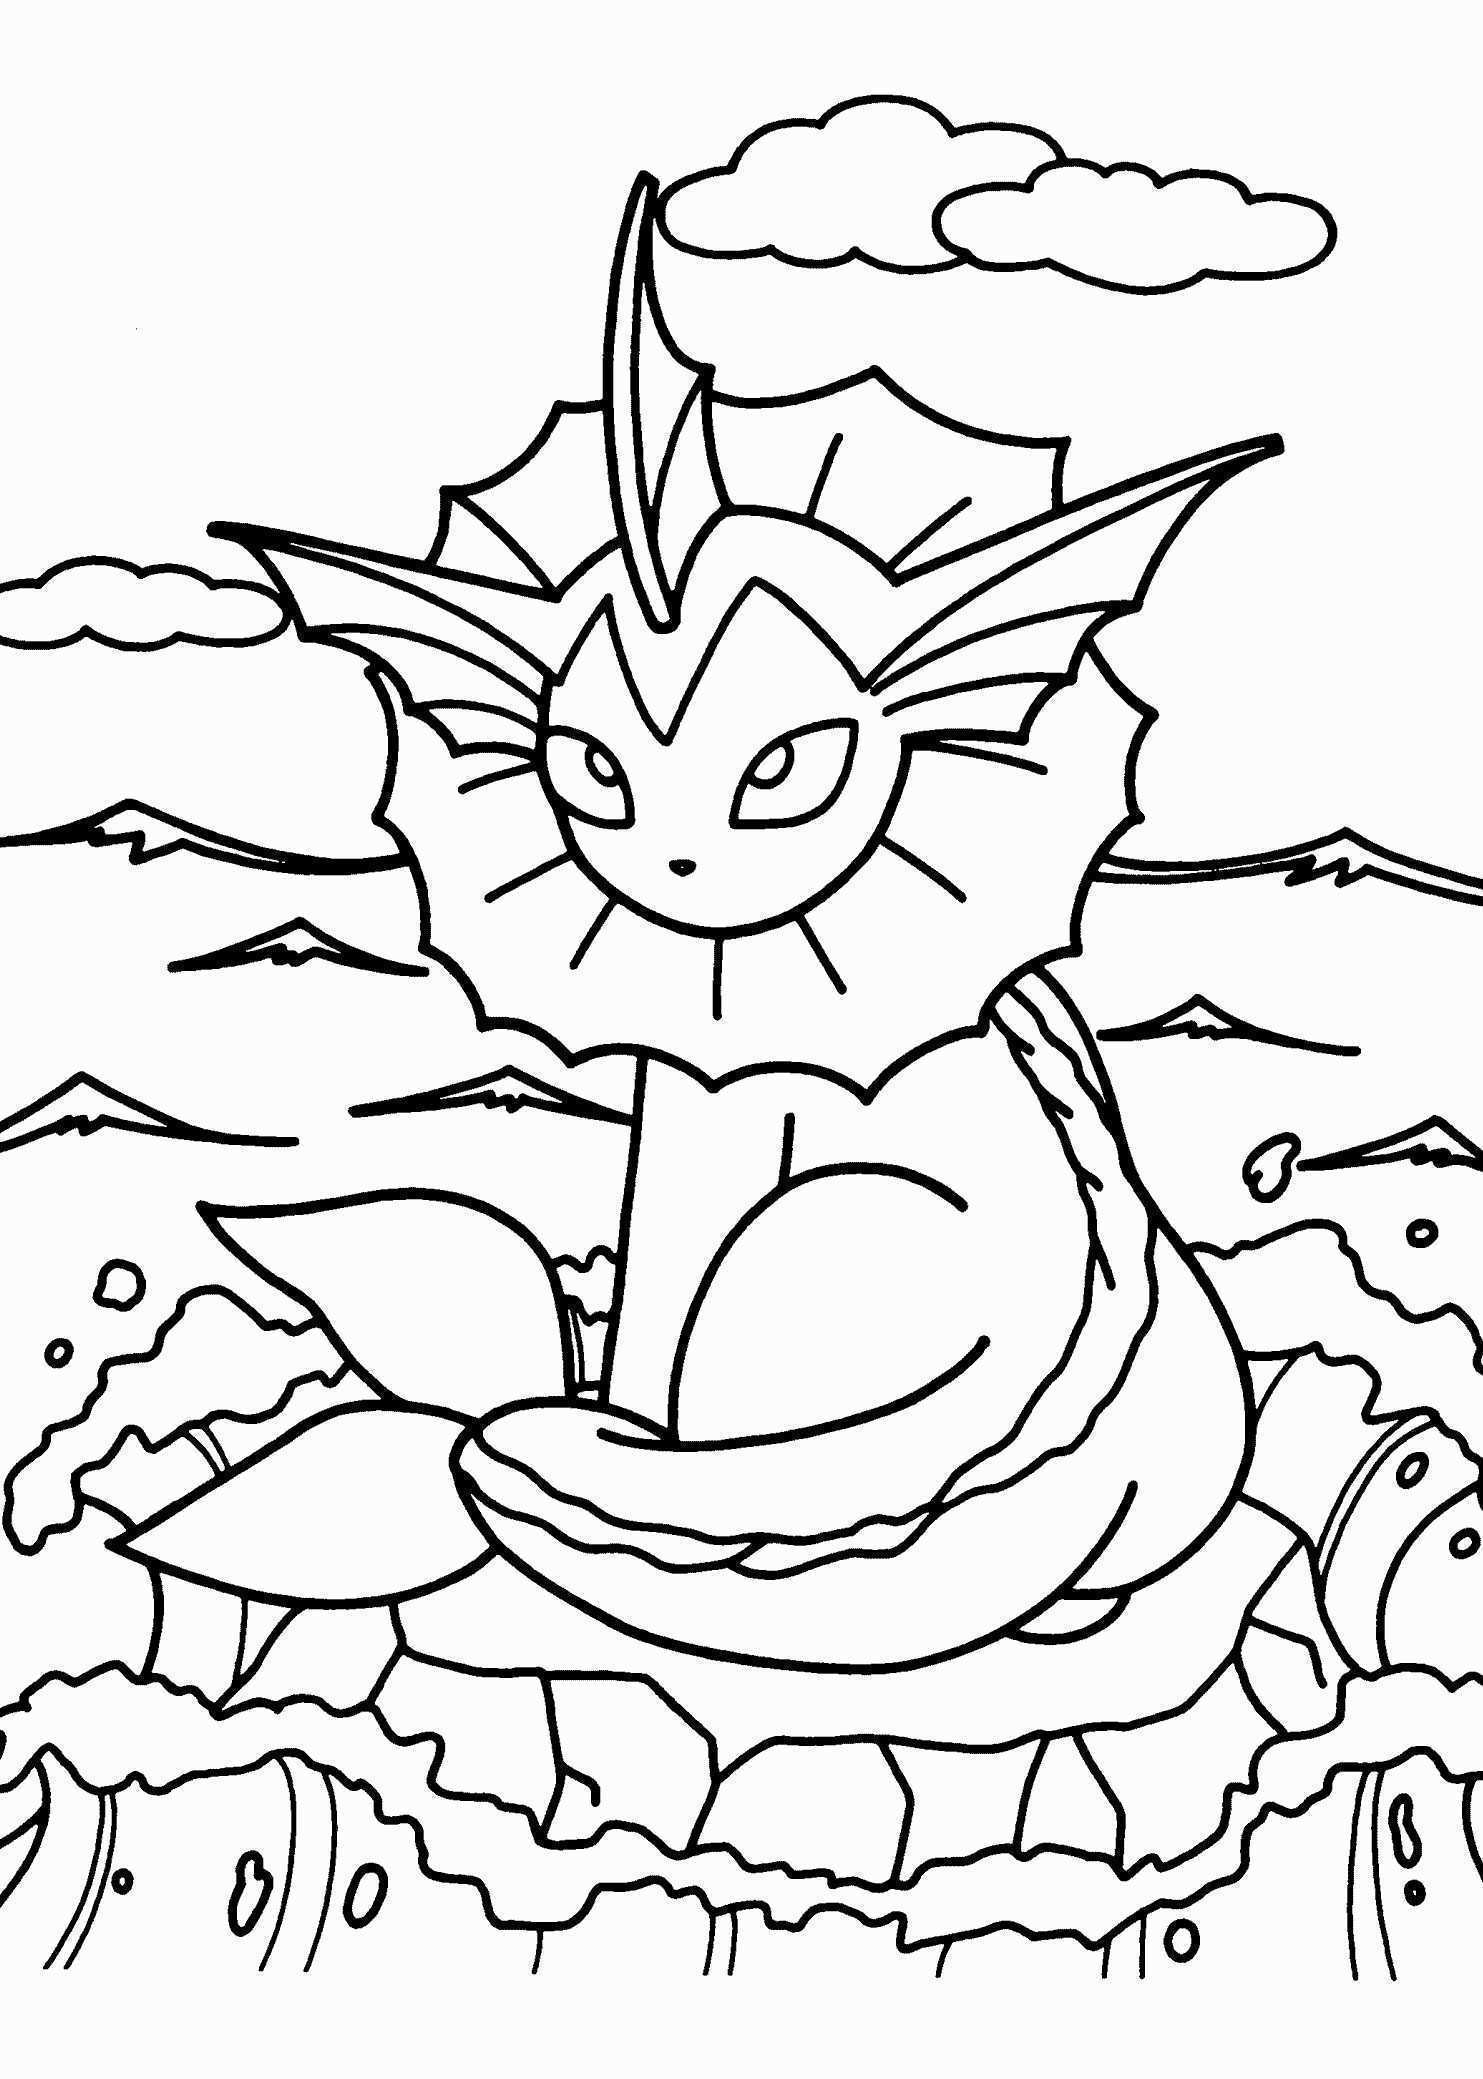 Free Coloring Pages for Children Awesome Free Kids S Best Page